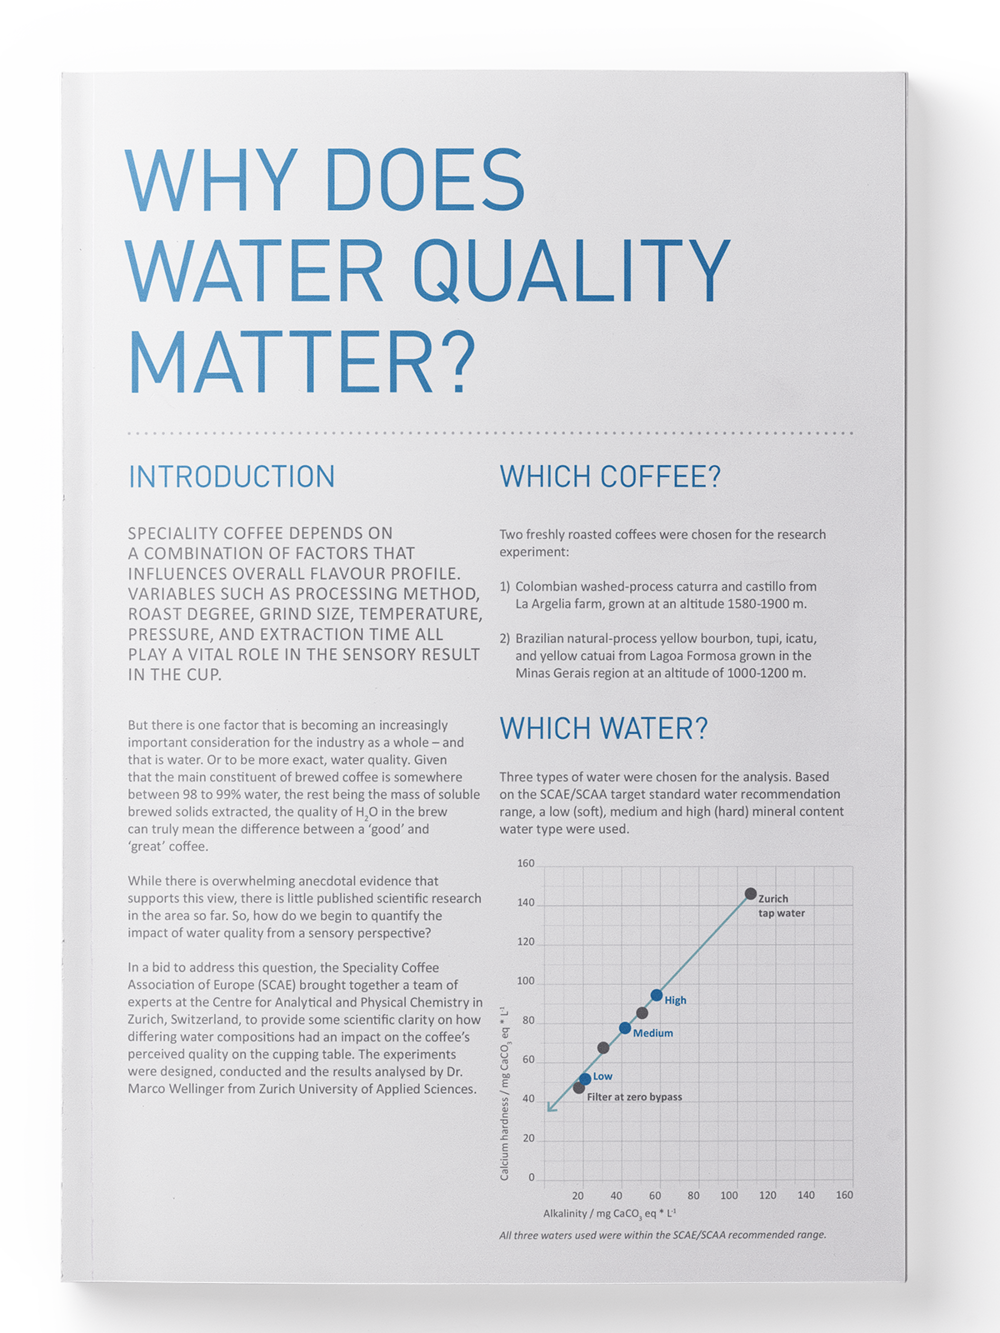 Why Does Water Quality Matter?  Specialty coffee depends on a combination of factors that influences overall flavour profile. Variables such as processing method, roast degree, grind size, temperature, pressure, and extraction time all play a vital role in the sensory result in the cup.   Member Access